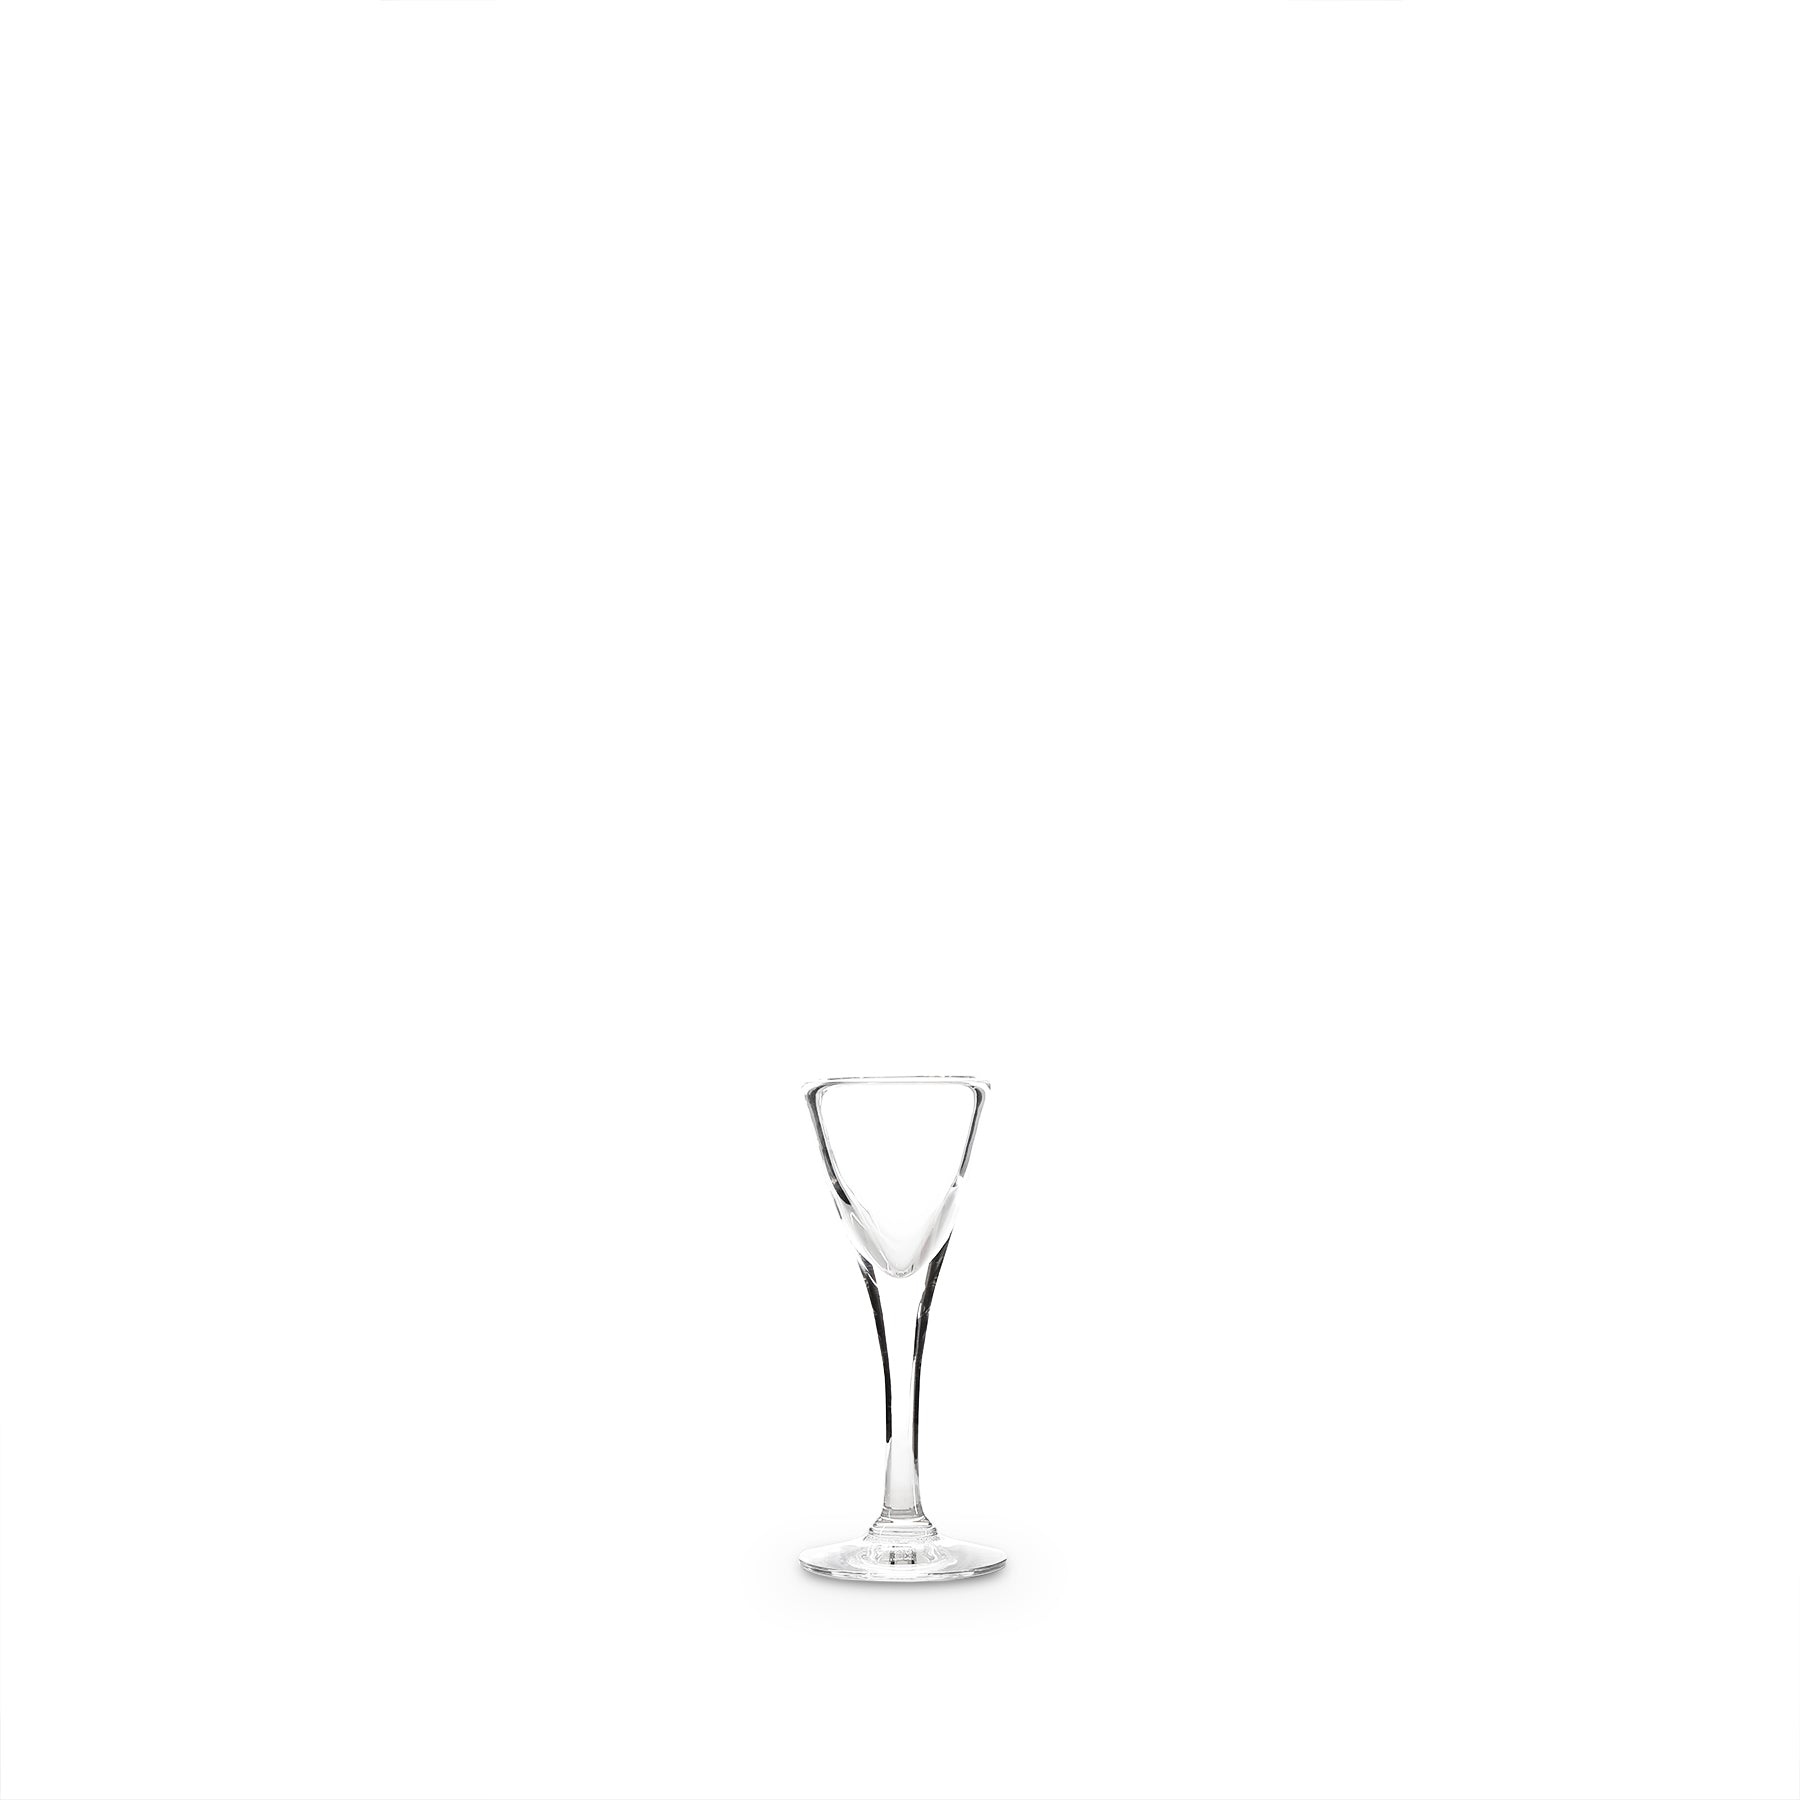 Bellman Vodka Glass Zoom Image 1